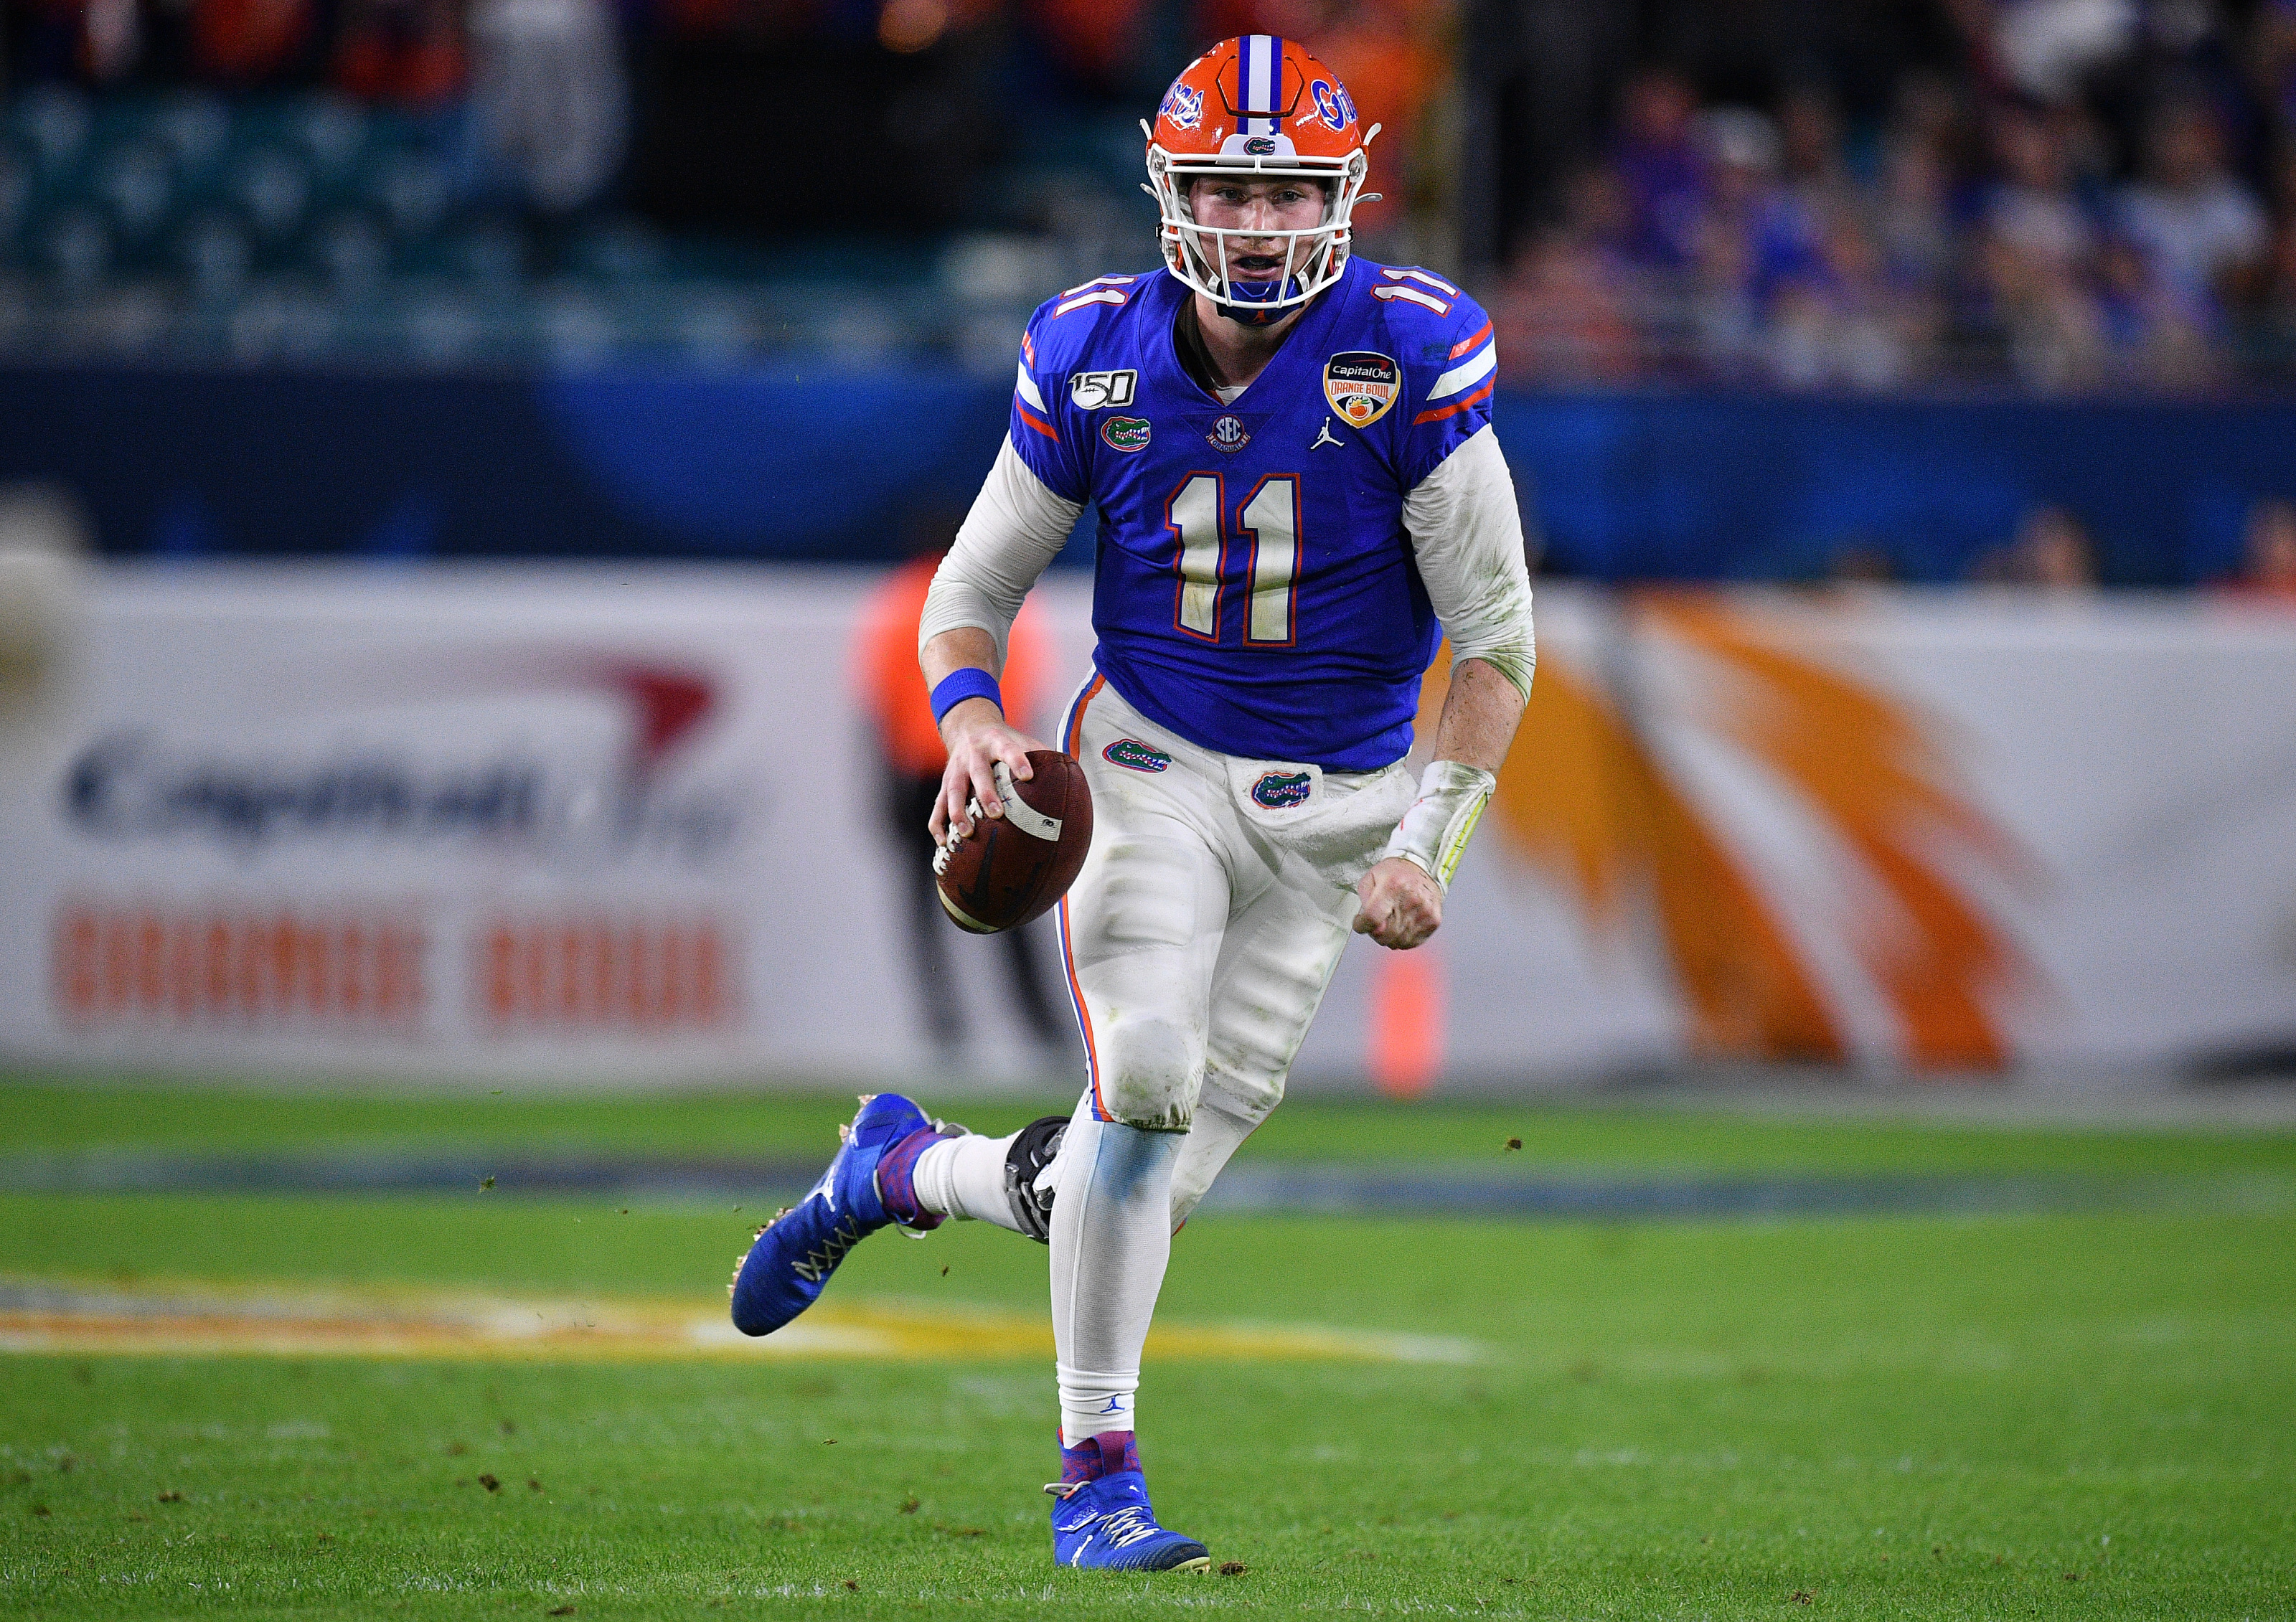 Florida Football: Kyle Trask would be perfect for these NFL teams